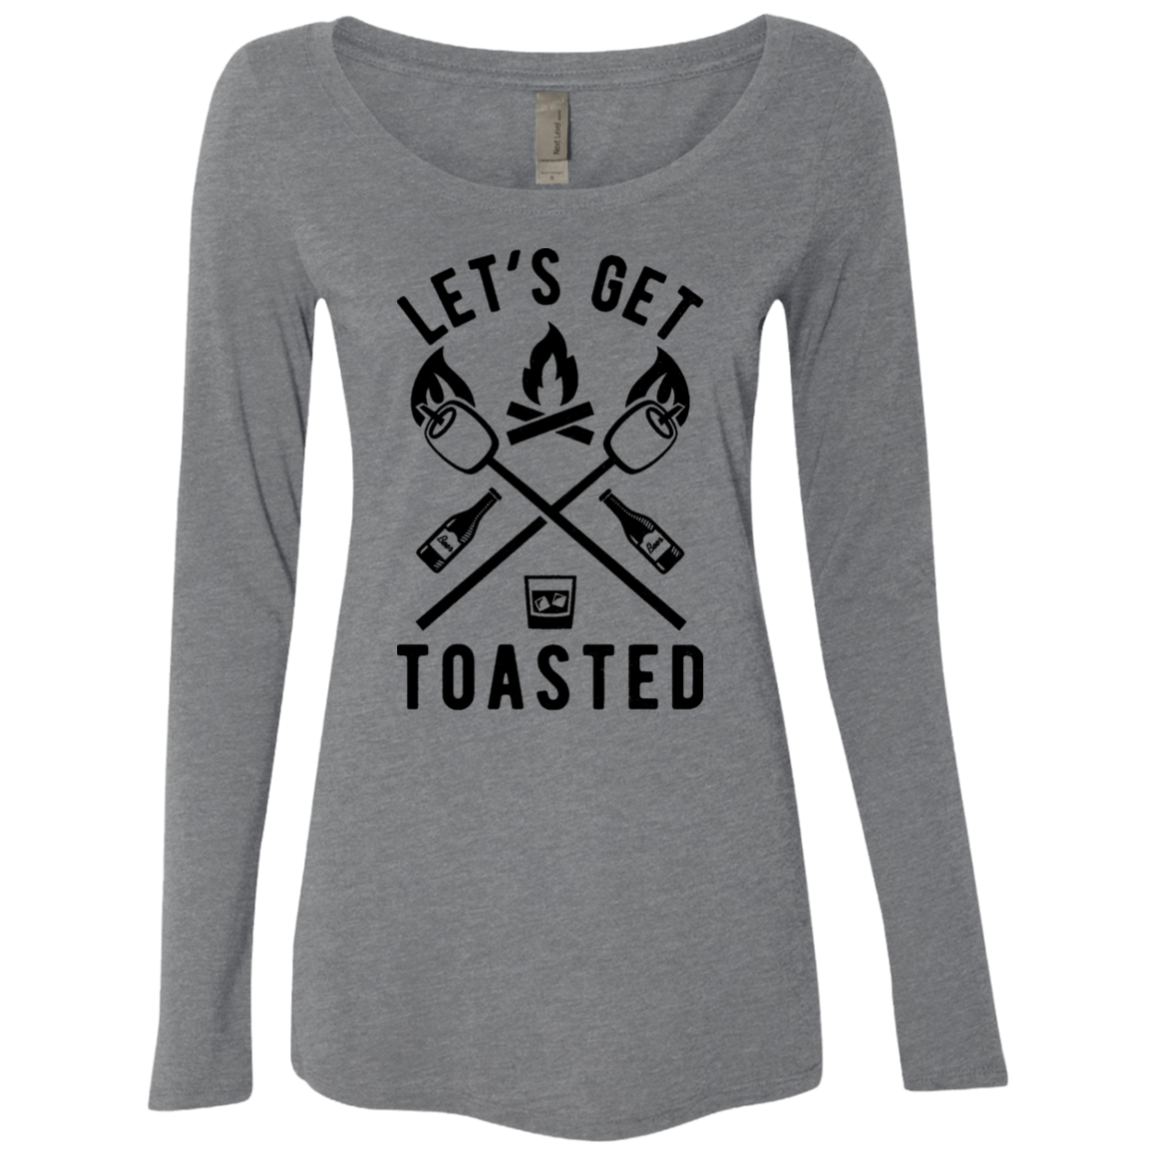 Let's Get Toasted Women's Long Sleeve Tee